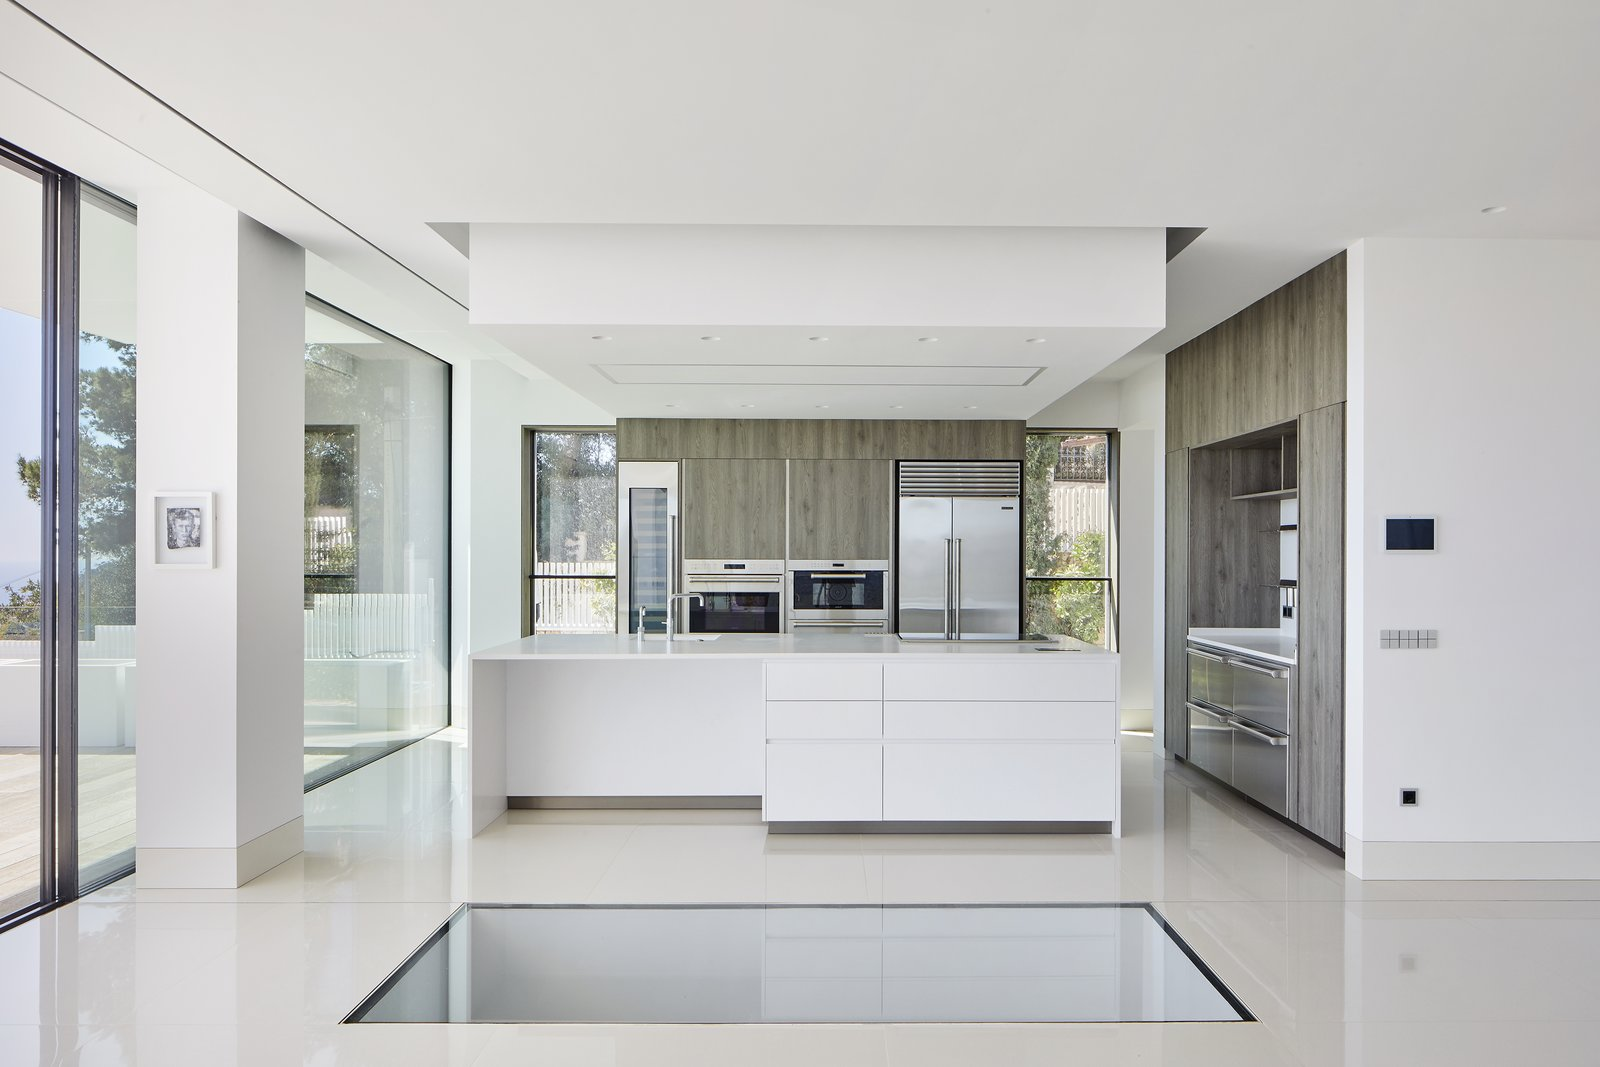 Kitchen, Wall Oven, White, Metal, Microwave, Wine Cooler, Drop In, Laminate, Ceiling, Granite, Range, Range Hood, Dishwasher, Ice Maker, Table, Beverage Center, Cooktops, Wood, Refrigerator, and Porcelain Tile Kitchen.  Best Kitchen Beverage Center Range Table Metal White Wood Drop In Range Hood Photos from 廚房